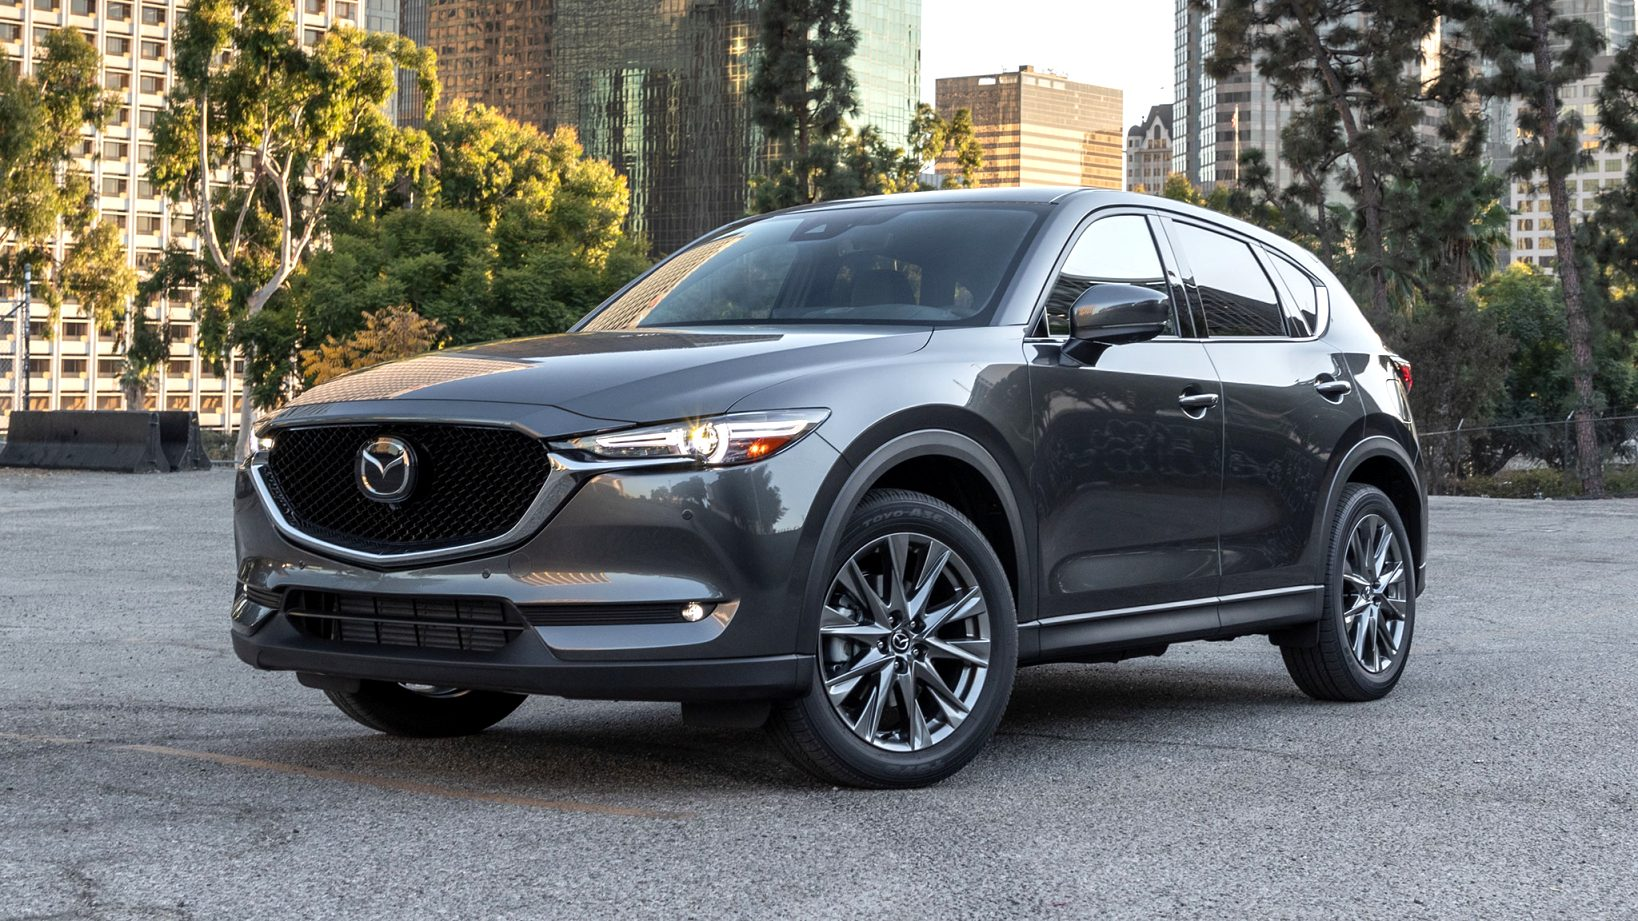 2021 mazda 6 zero to 60 Price and Review